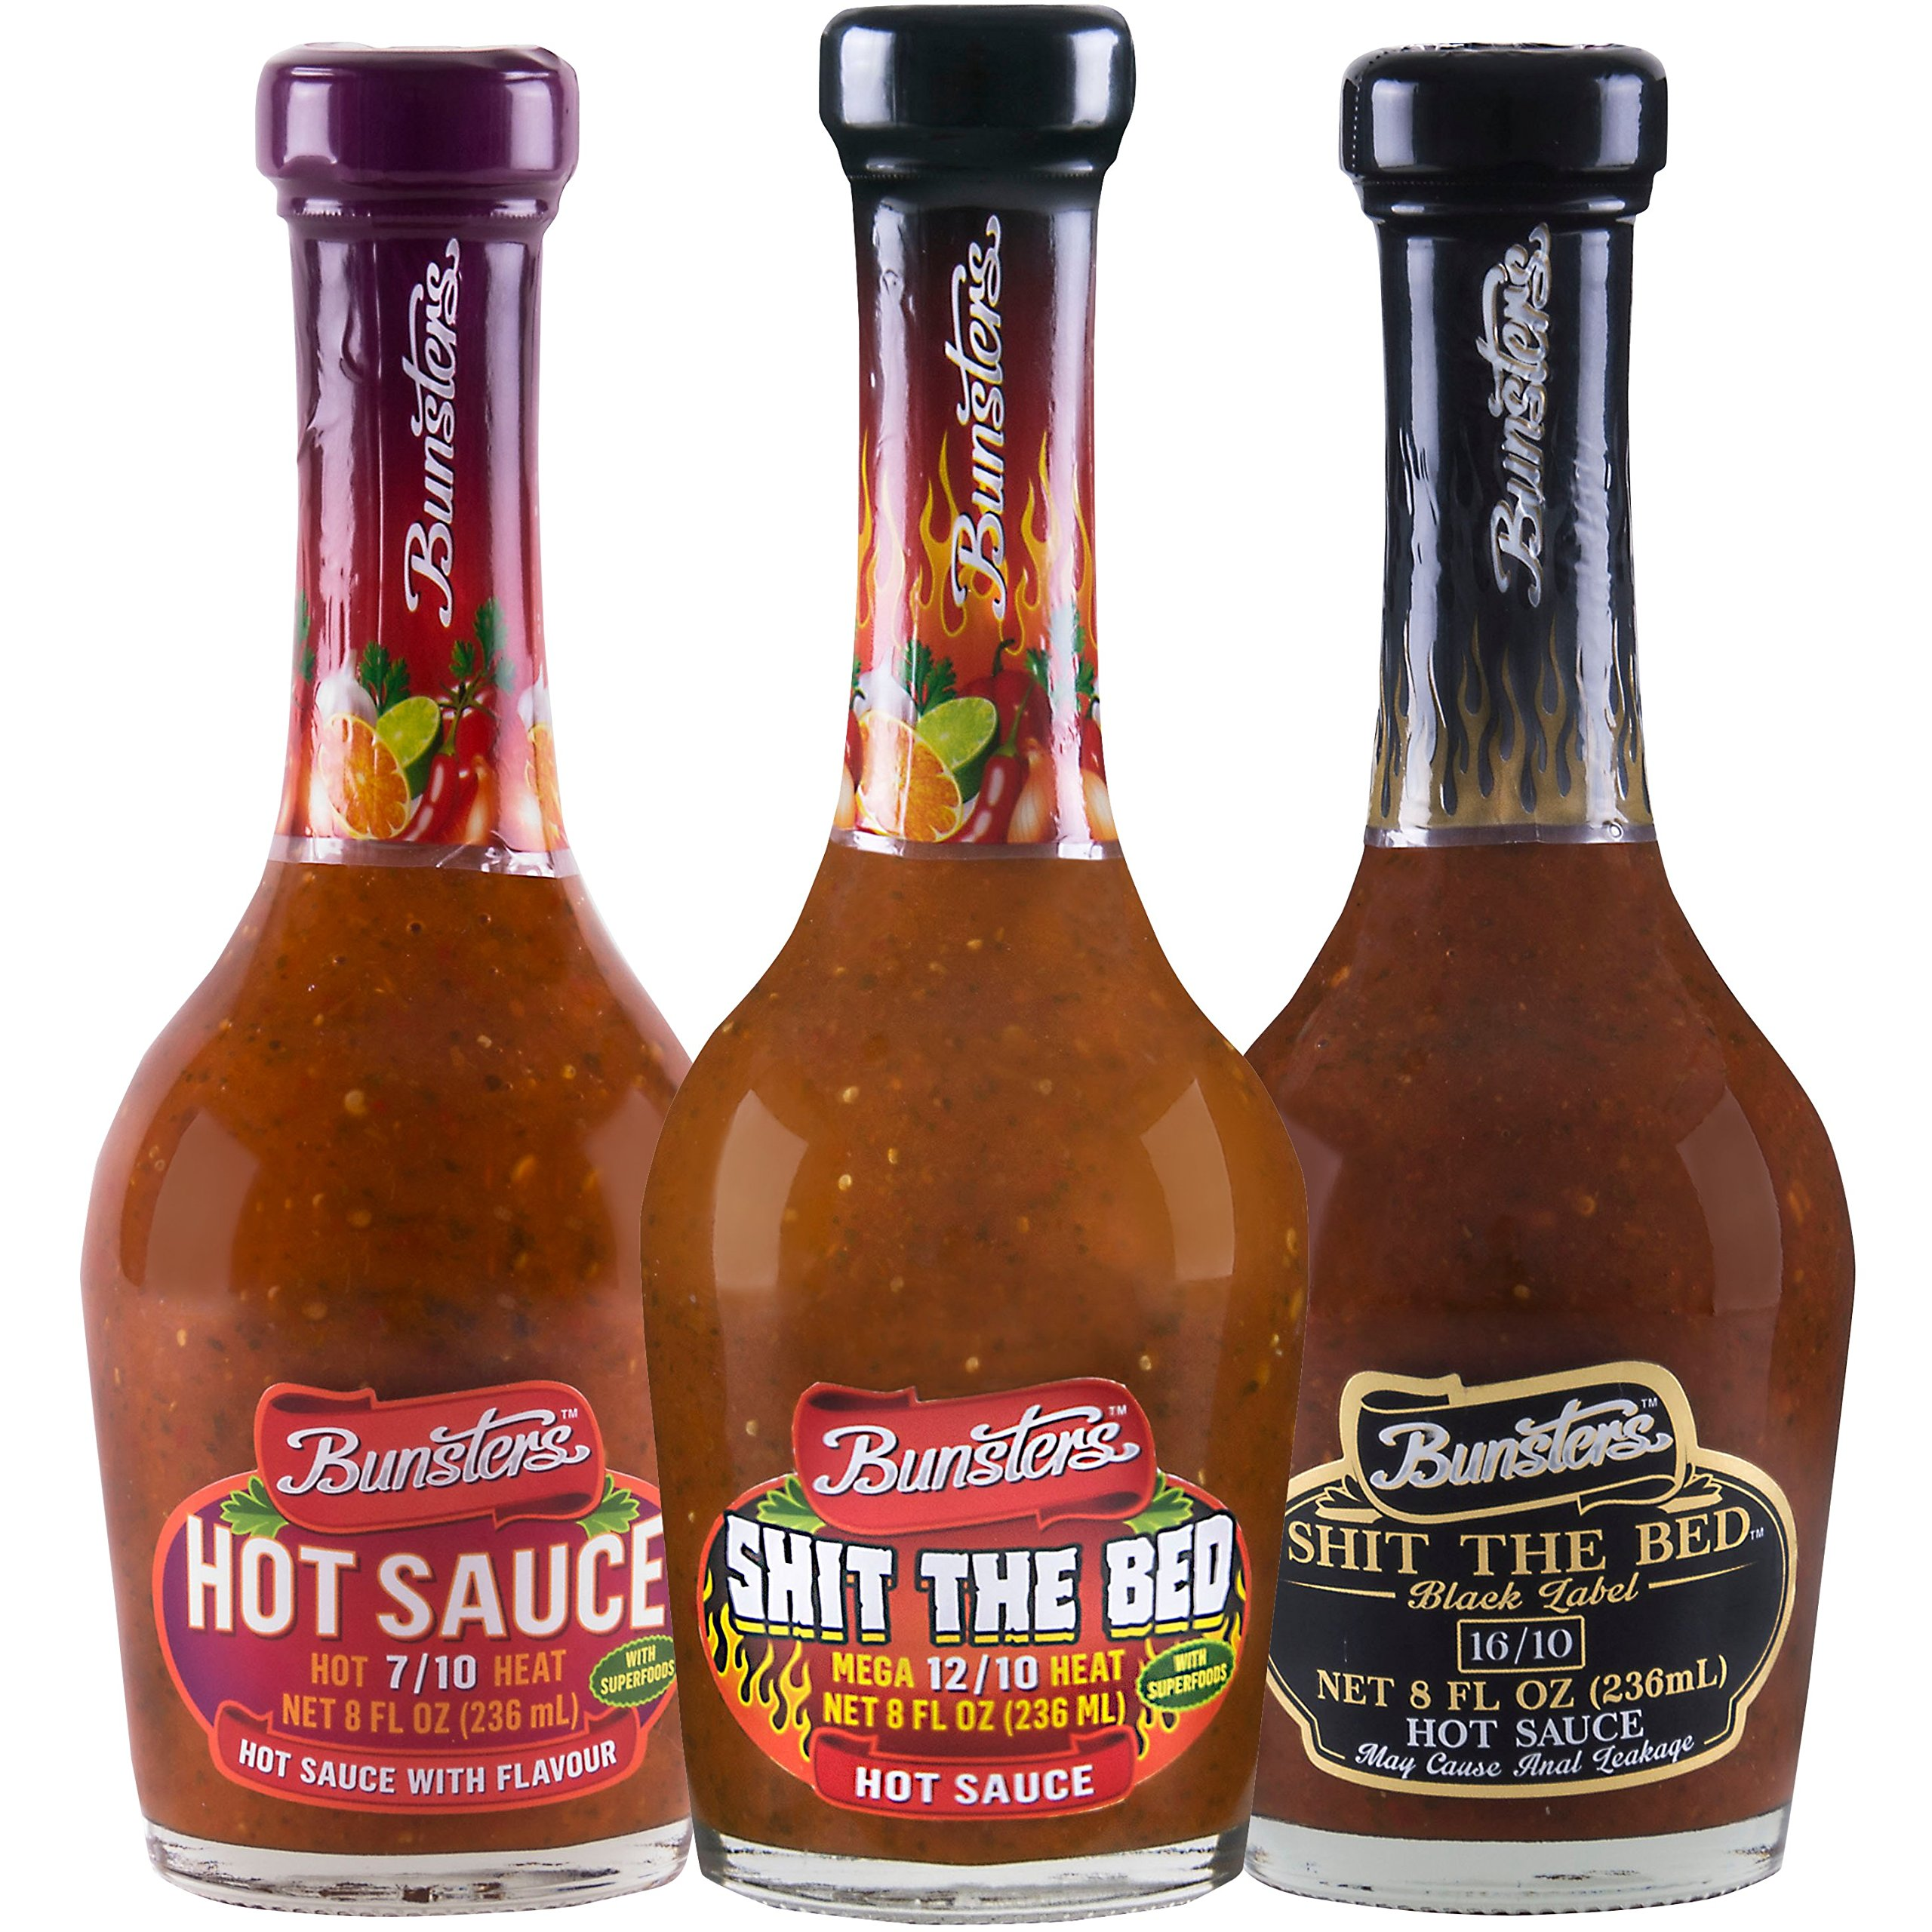 Bunsters Hot Chili Pepper Sauce - 3 Pack Set - Including Shit the Bed Hot Sauce, 8 fl oz by Bunsters (Image #1)